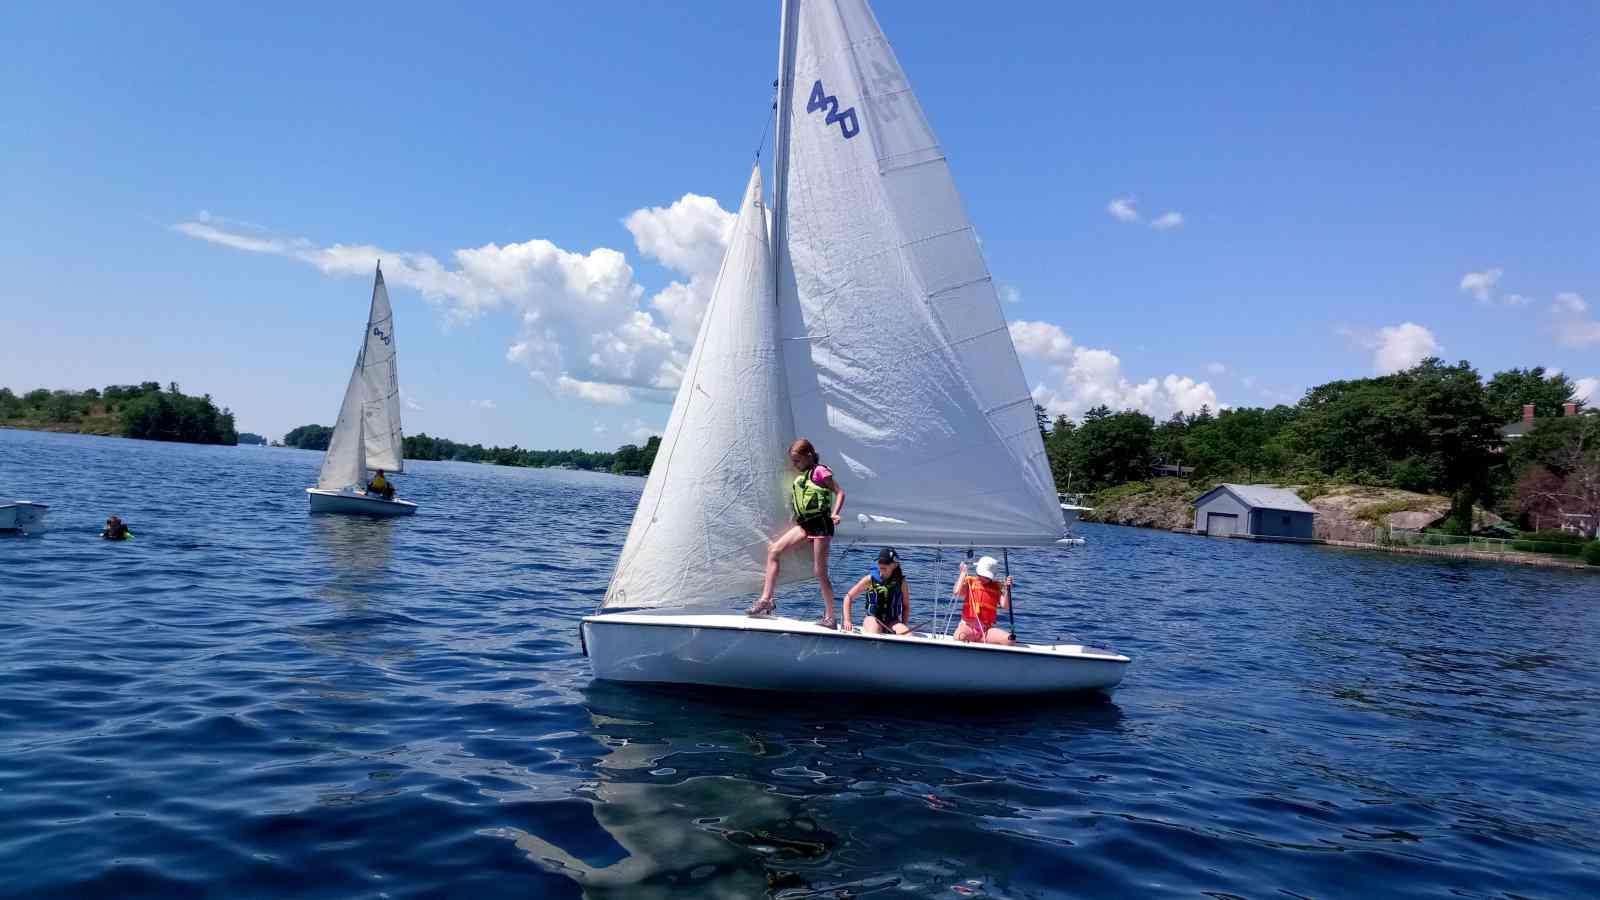 Brockville Yacht Club Sailing School water fun day summer.jpg